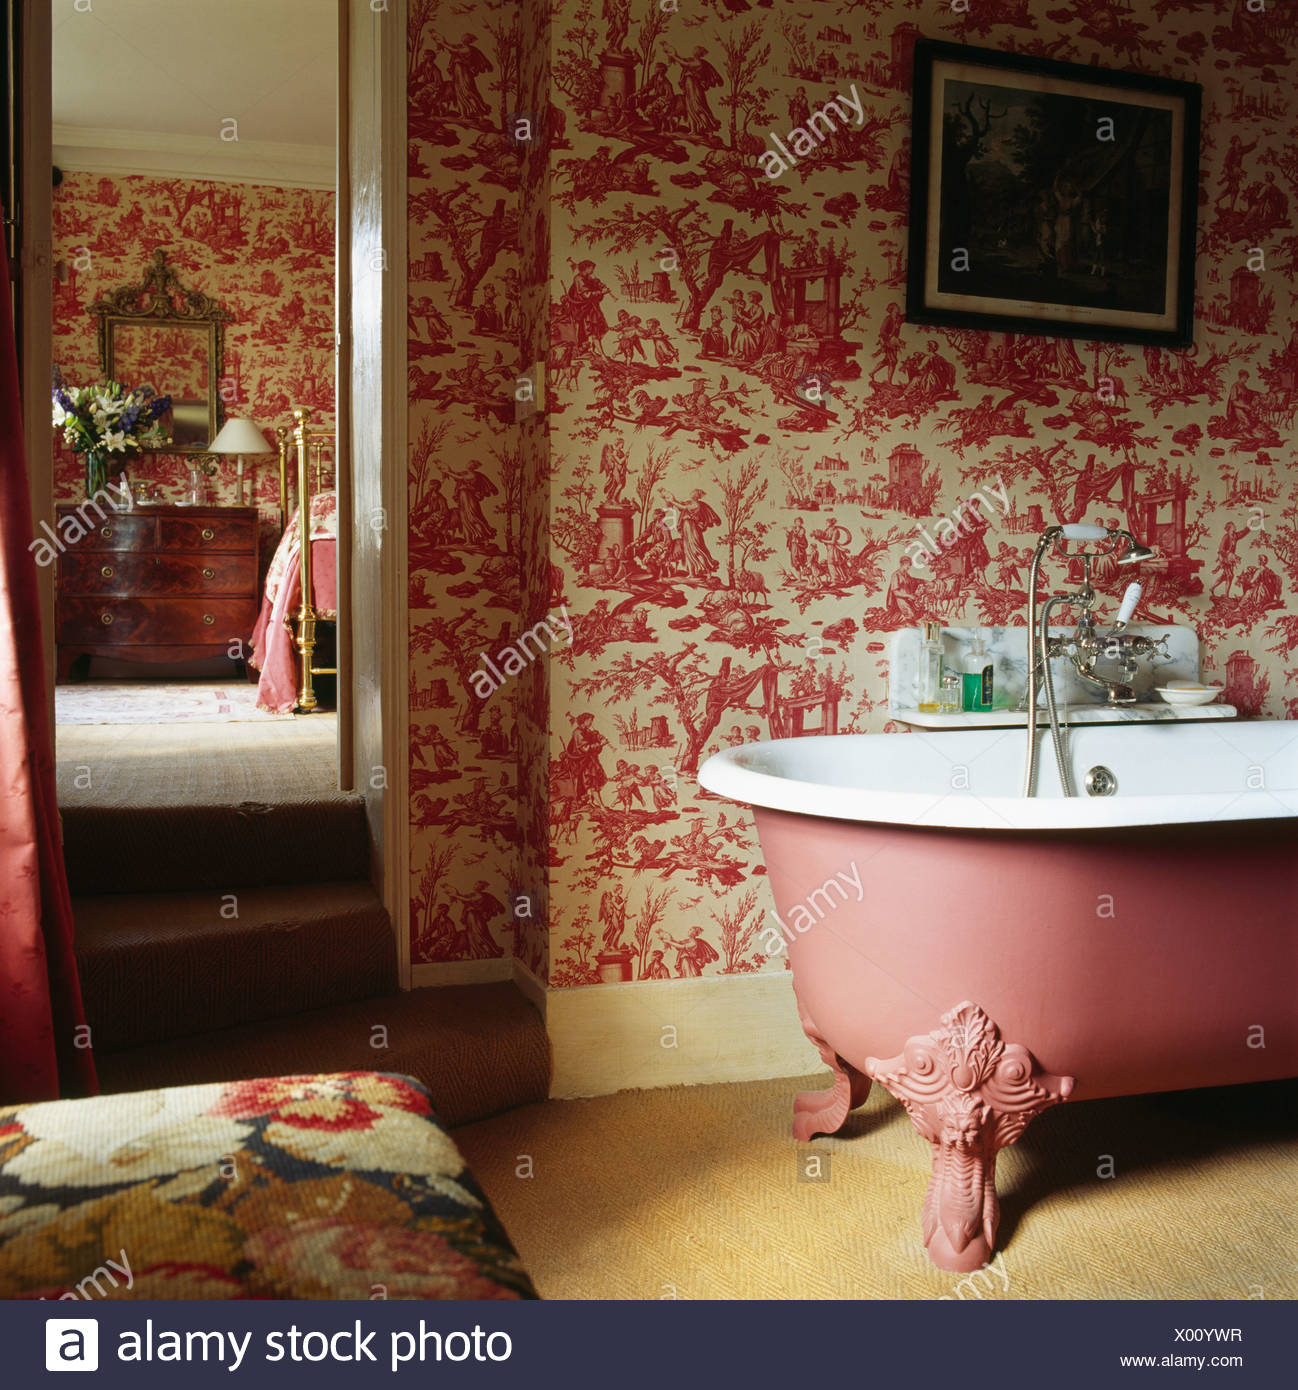 Pink Toile De Jouy Wallpaper And Pink Roll Top Bath In Traditional